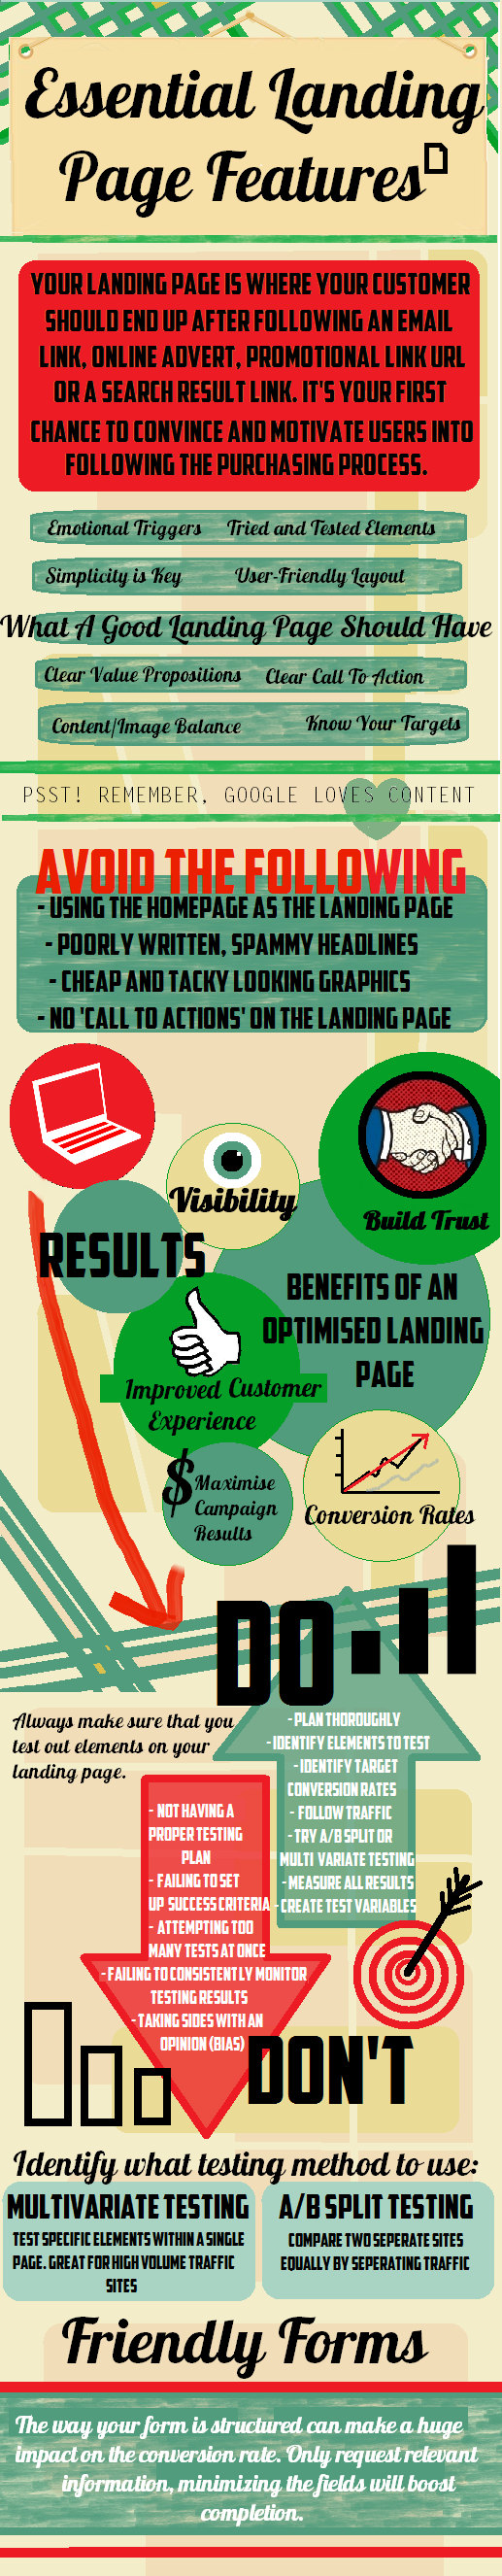 Top Essential Landing Page Features : infographic